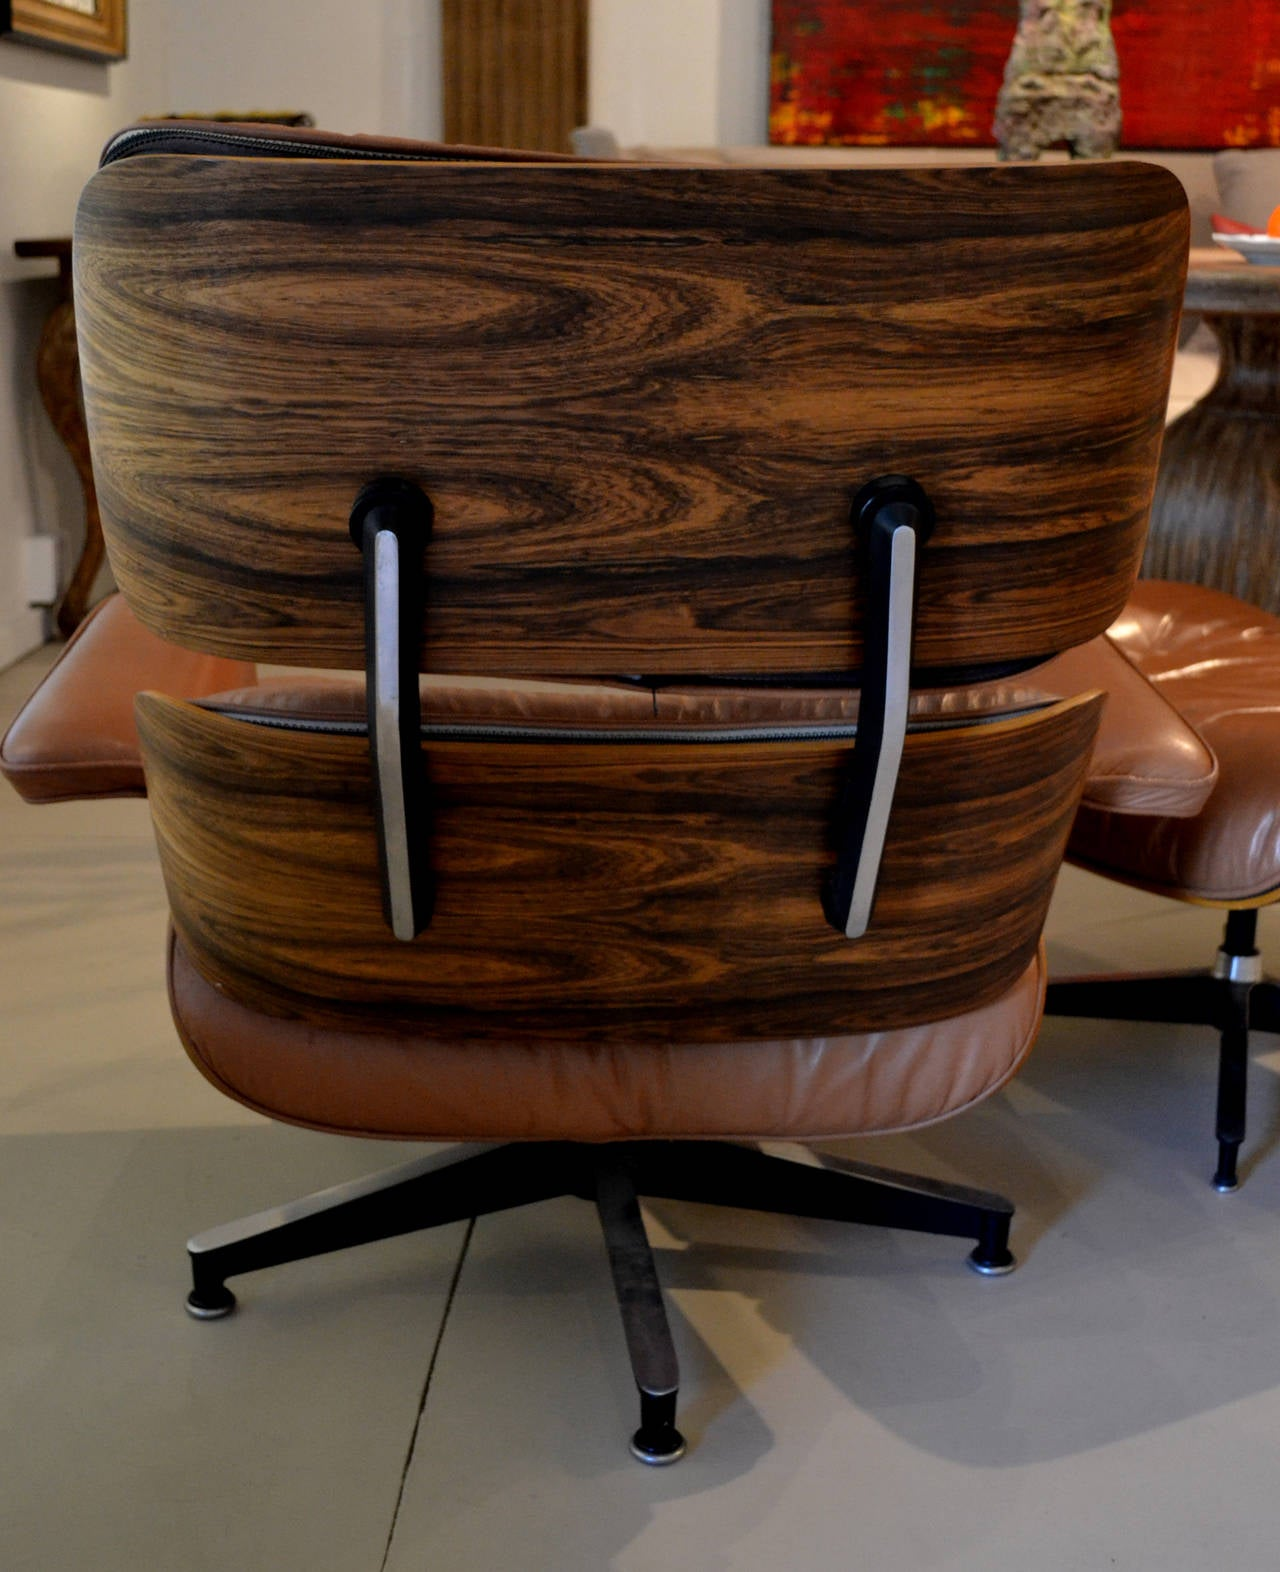 Vintage Eames Lounge Chair and Ottoman by Herman Miller at 1stdibs